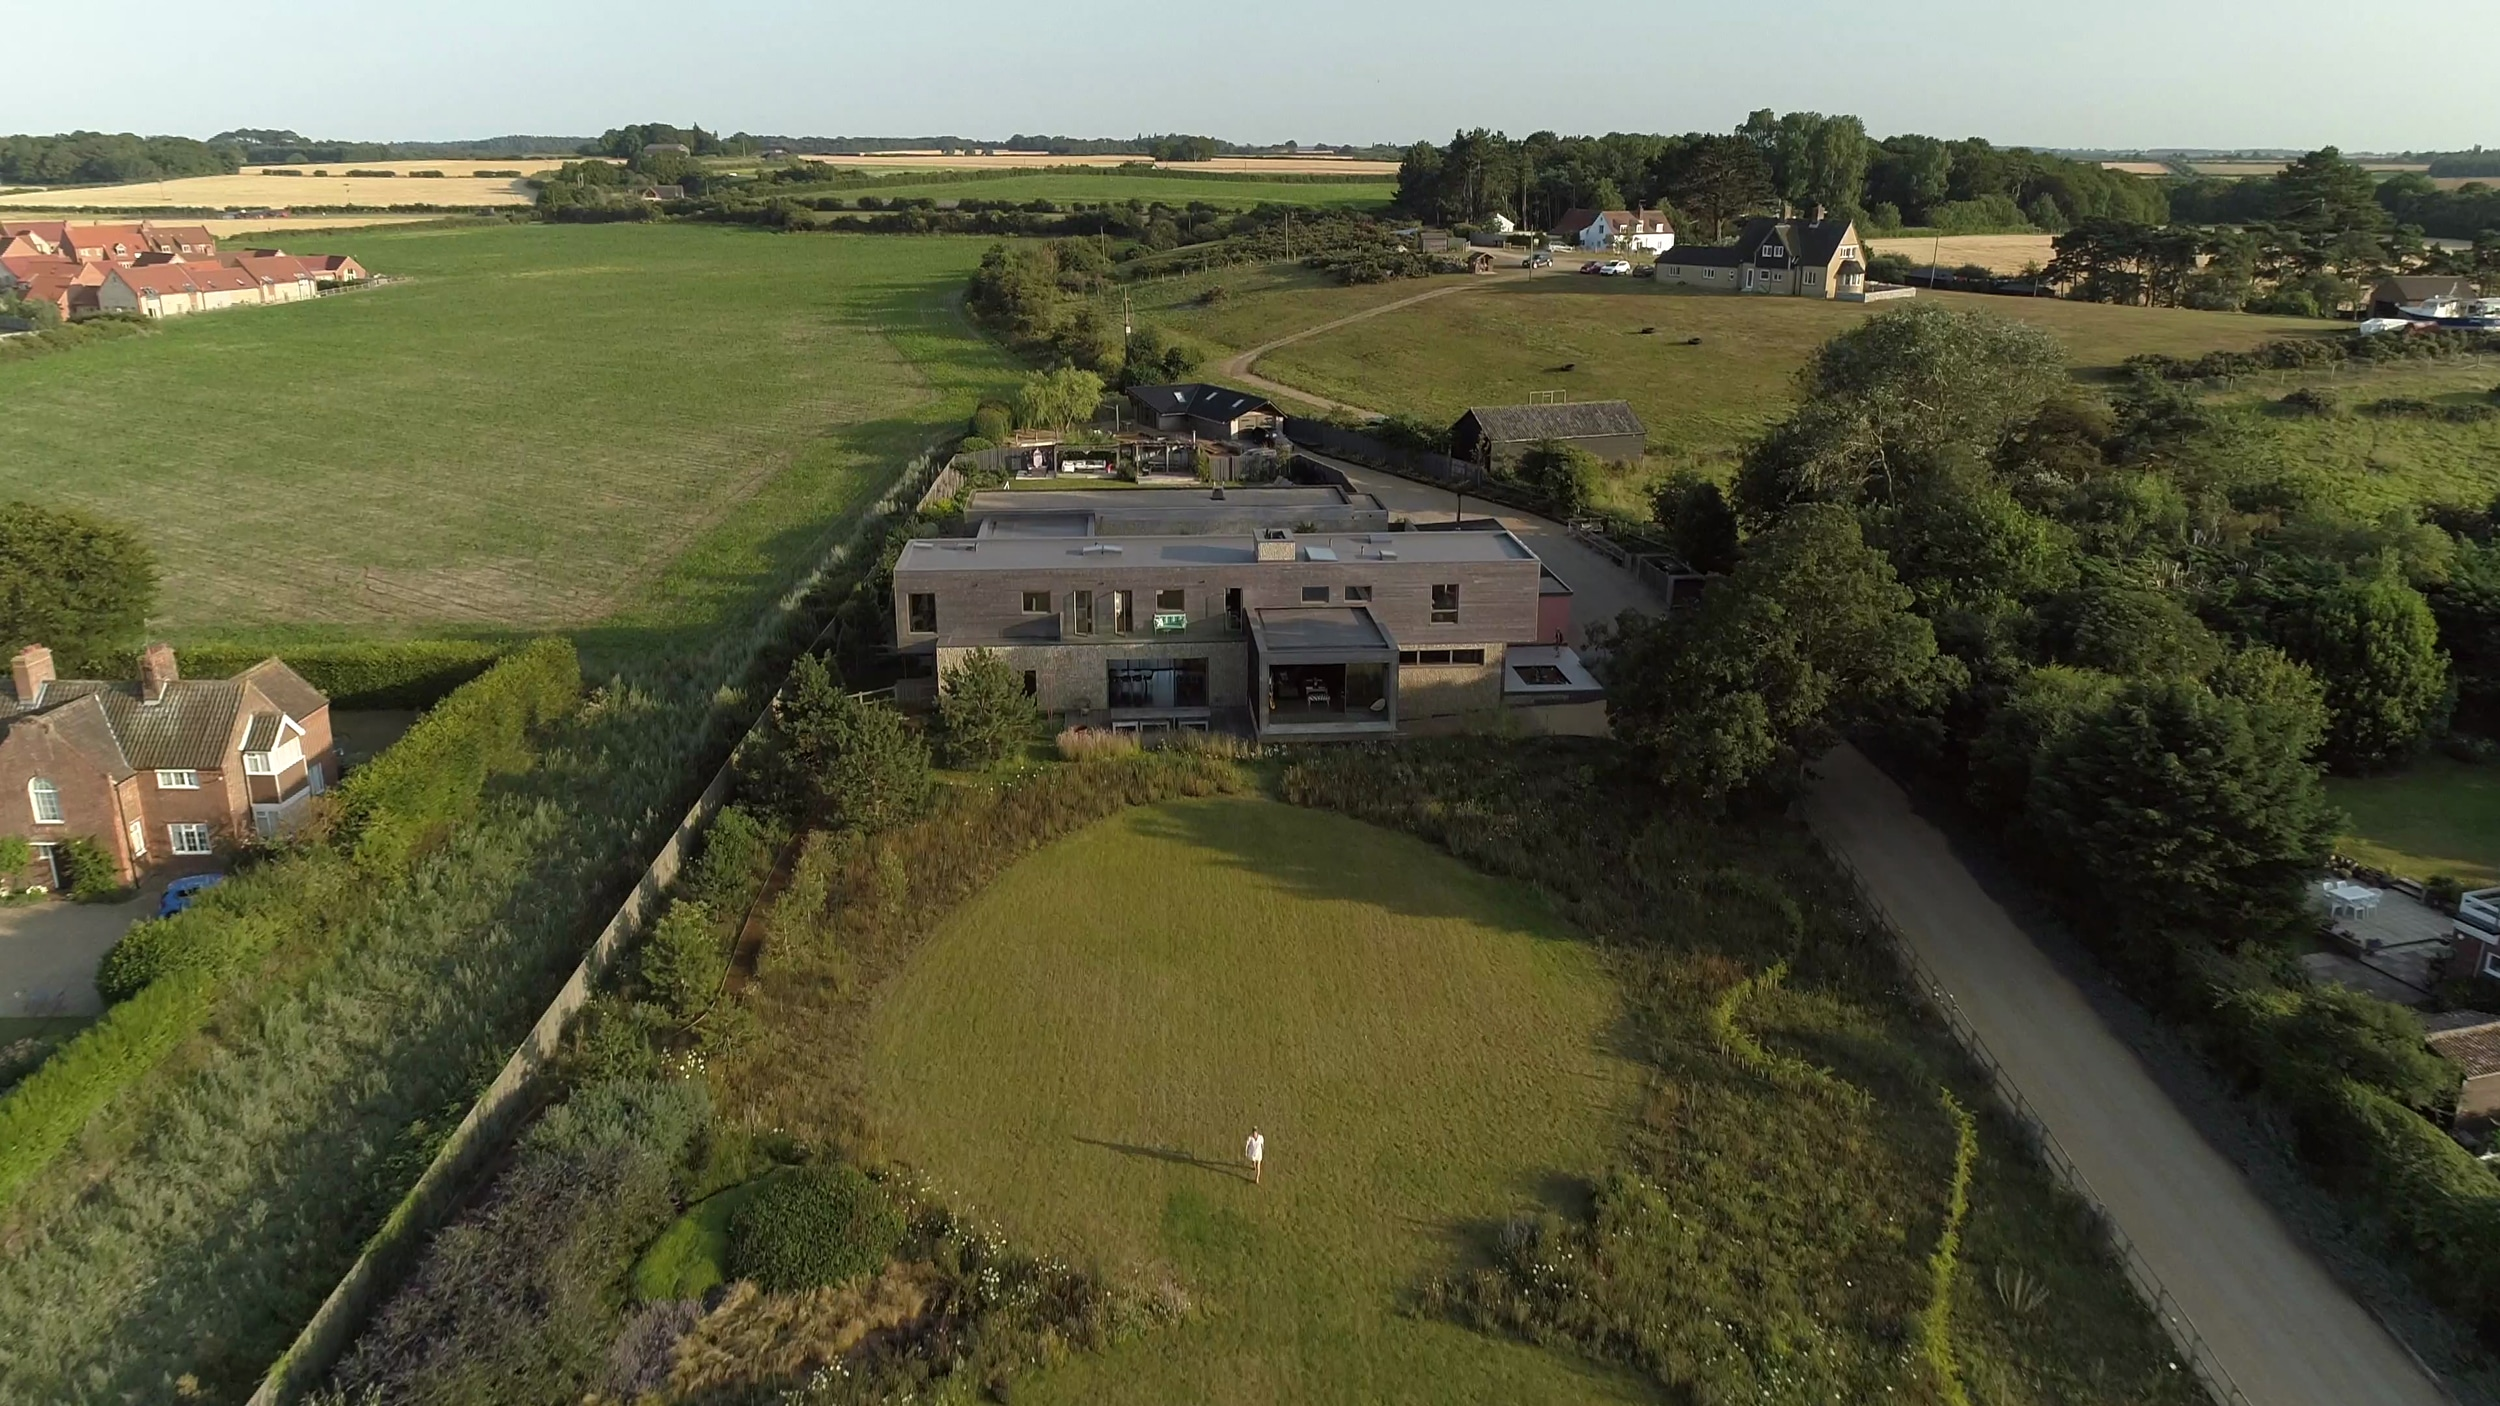 Bliss Blakeney is set in large grounds on the edge of the village